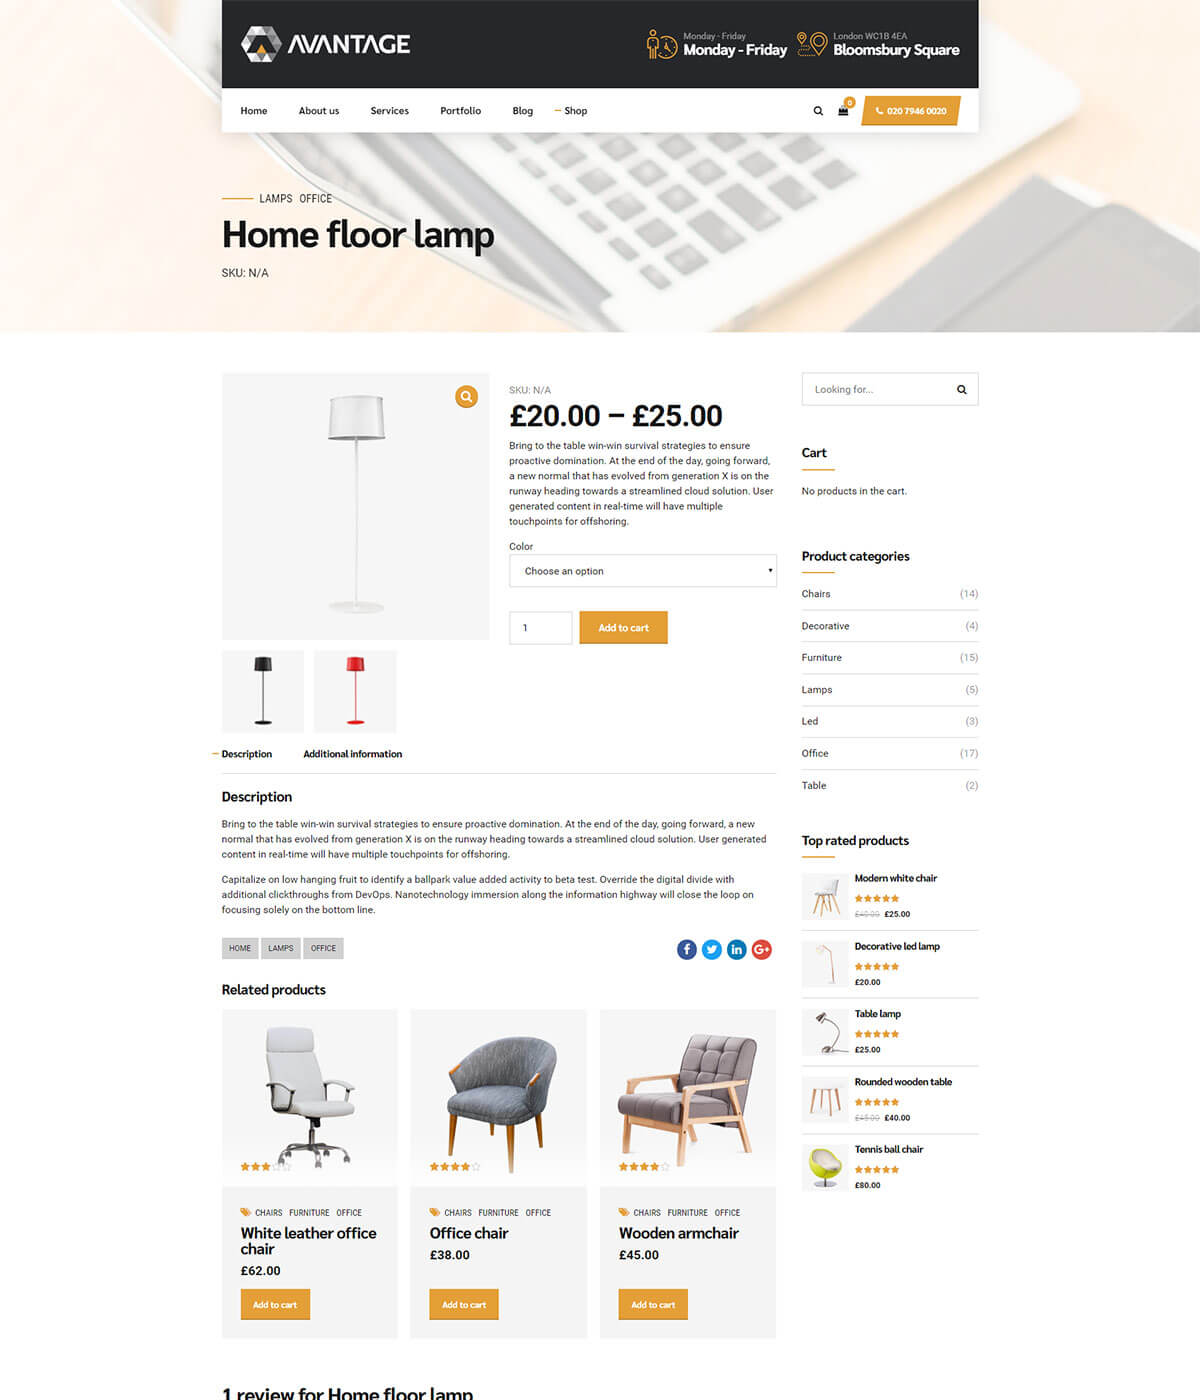 http://avantage.bold-themes.com/wp-content/uploads/2019/05/marketing-15-product.jpg